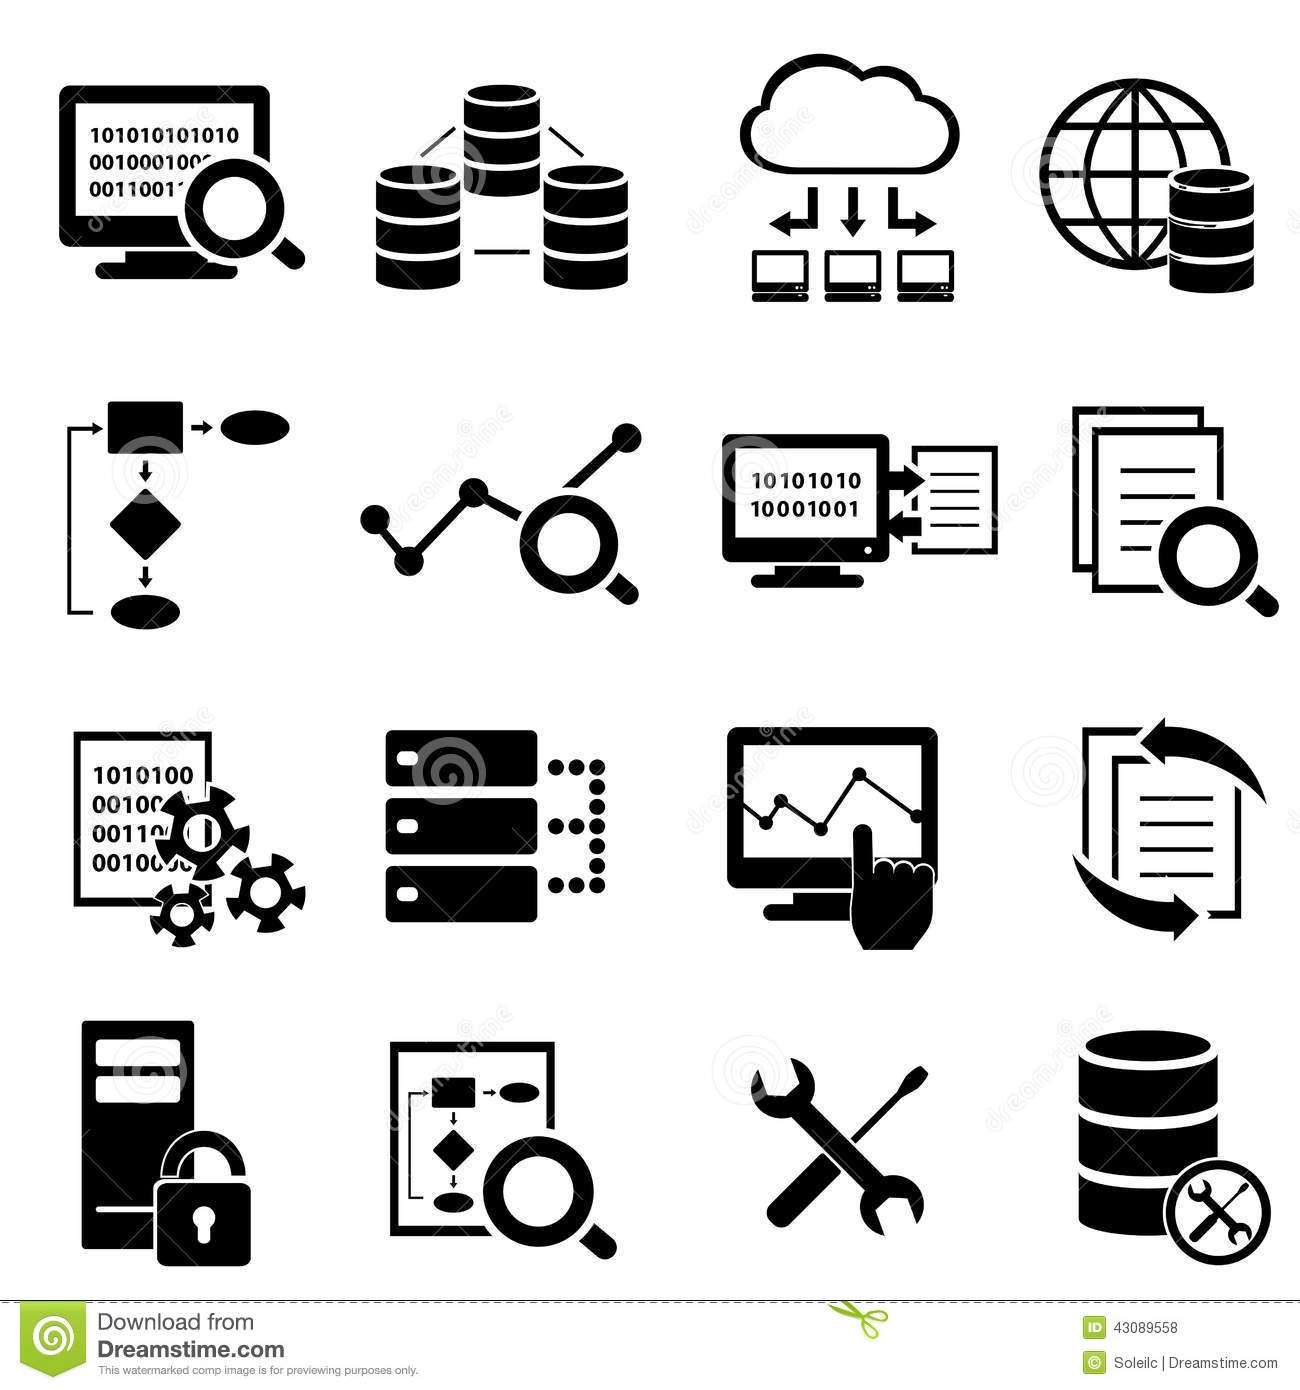 network diagram icons vector